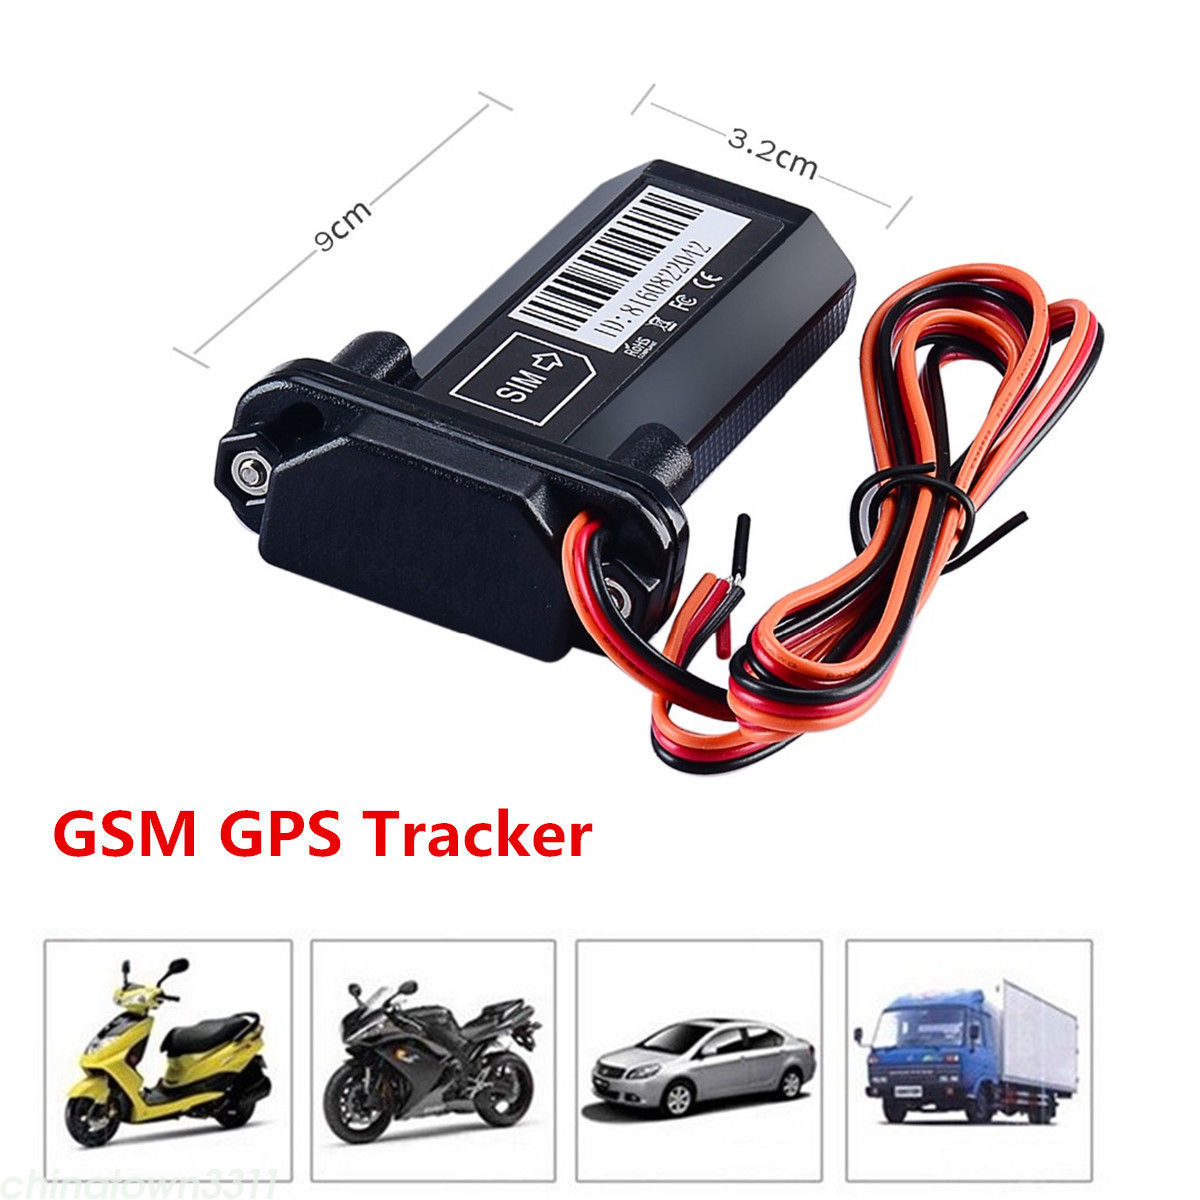 GSM GPS Tracker Car Motorcycle Vehicle Locator Global Real Time Tracking Device | eBay